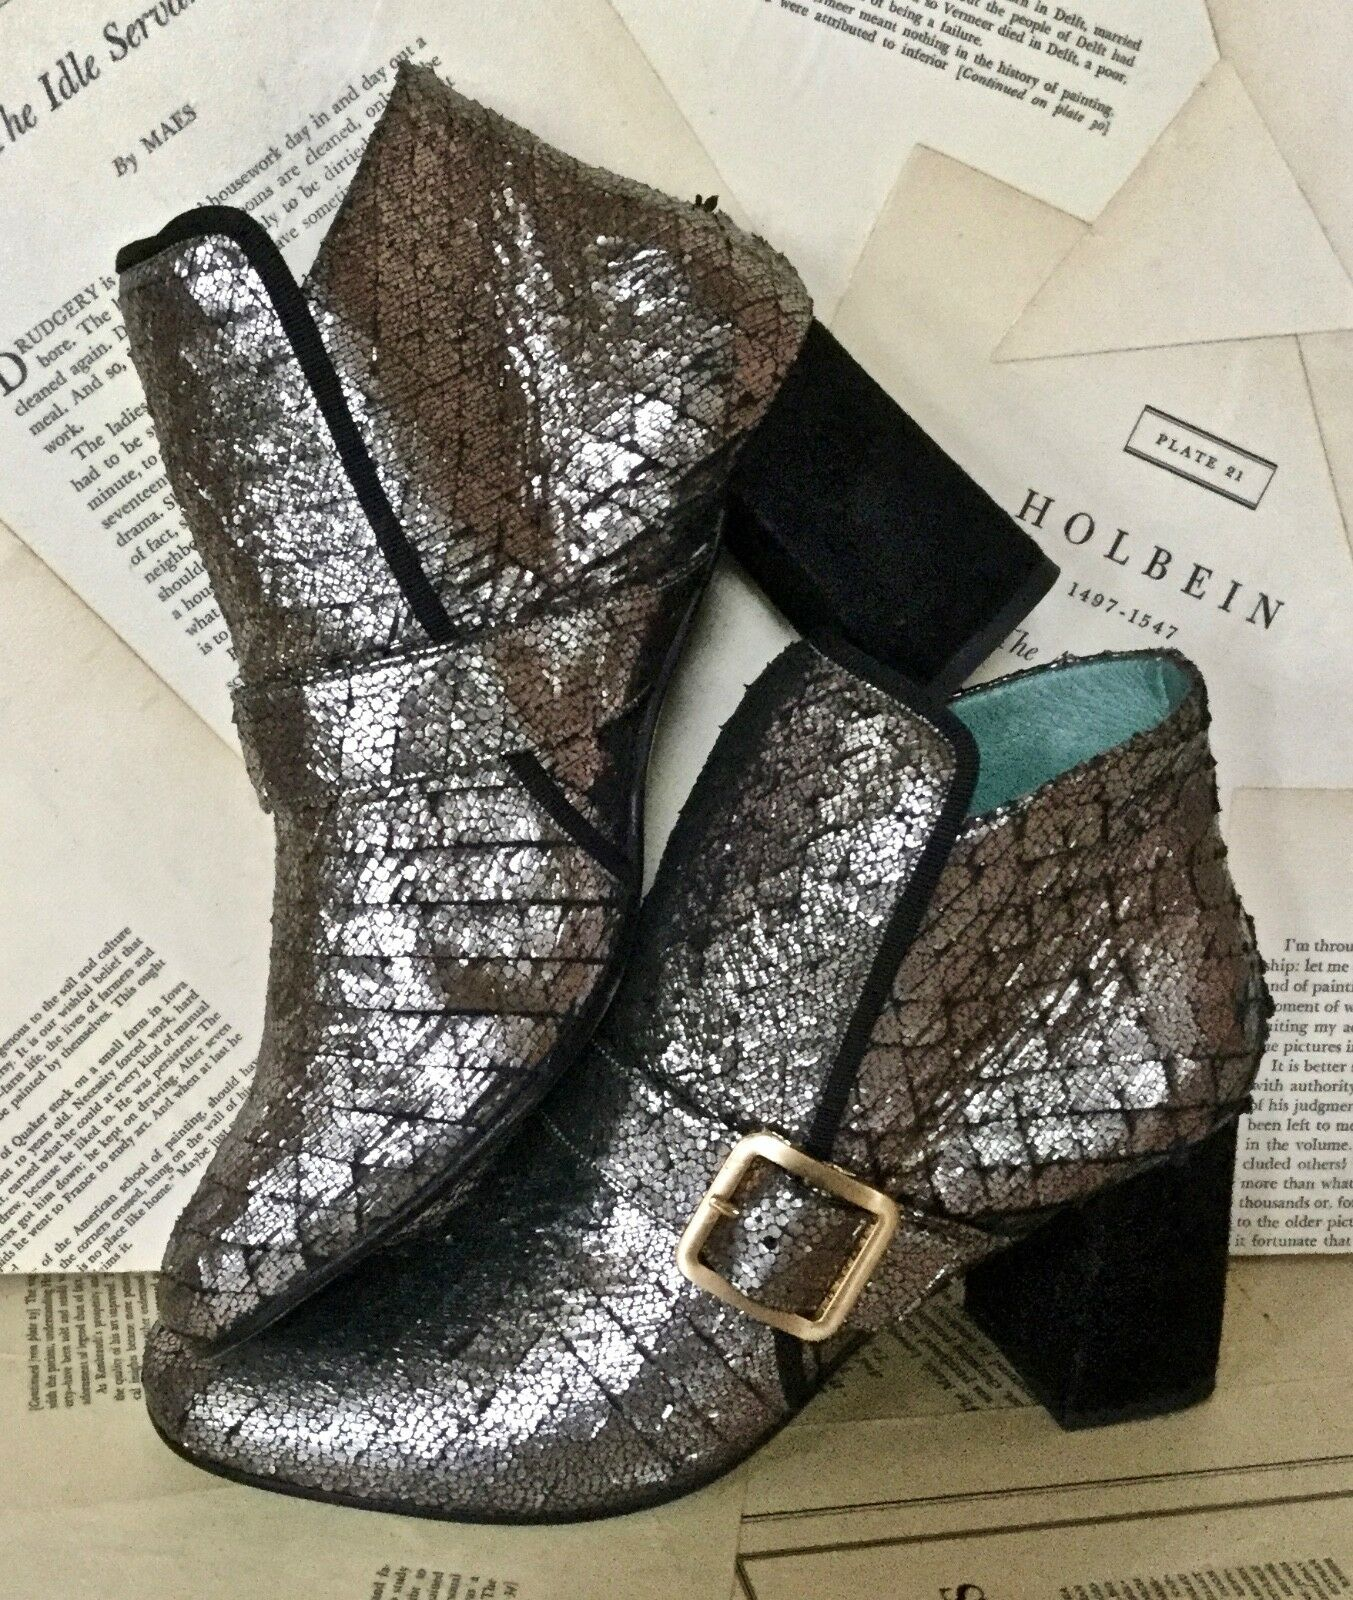 NEW Anthropologie Paola Paola Paola D'arcano gunmetal Metallic Scaled Pelle Boot 37 / 6 f4c1b6